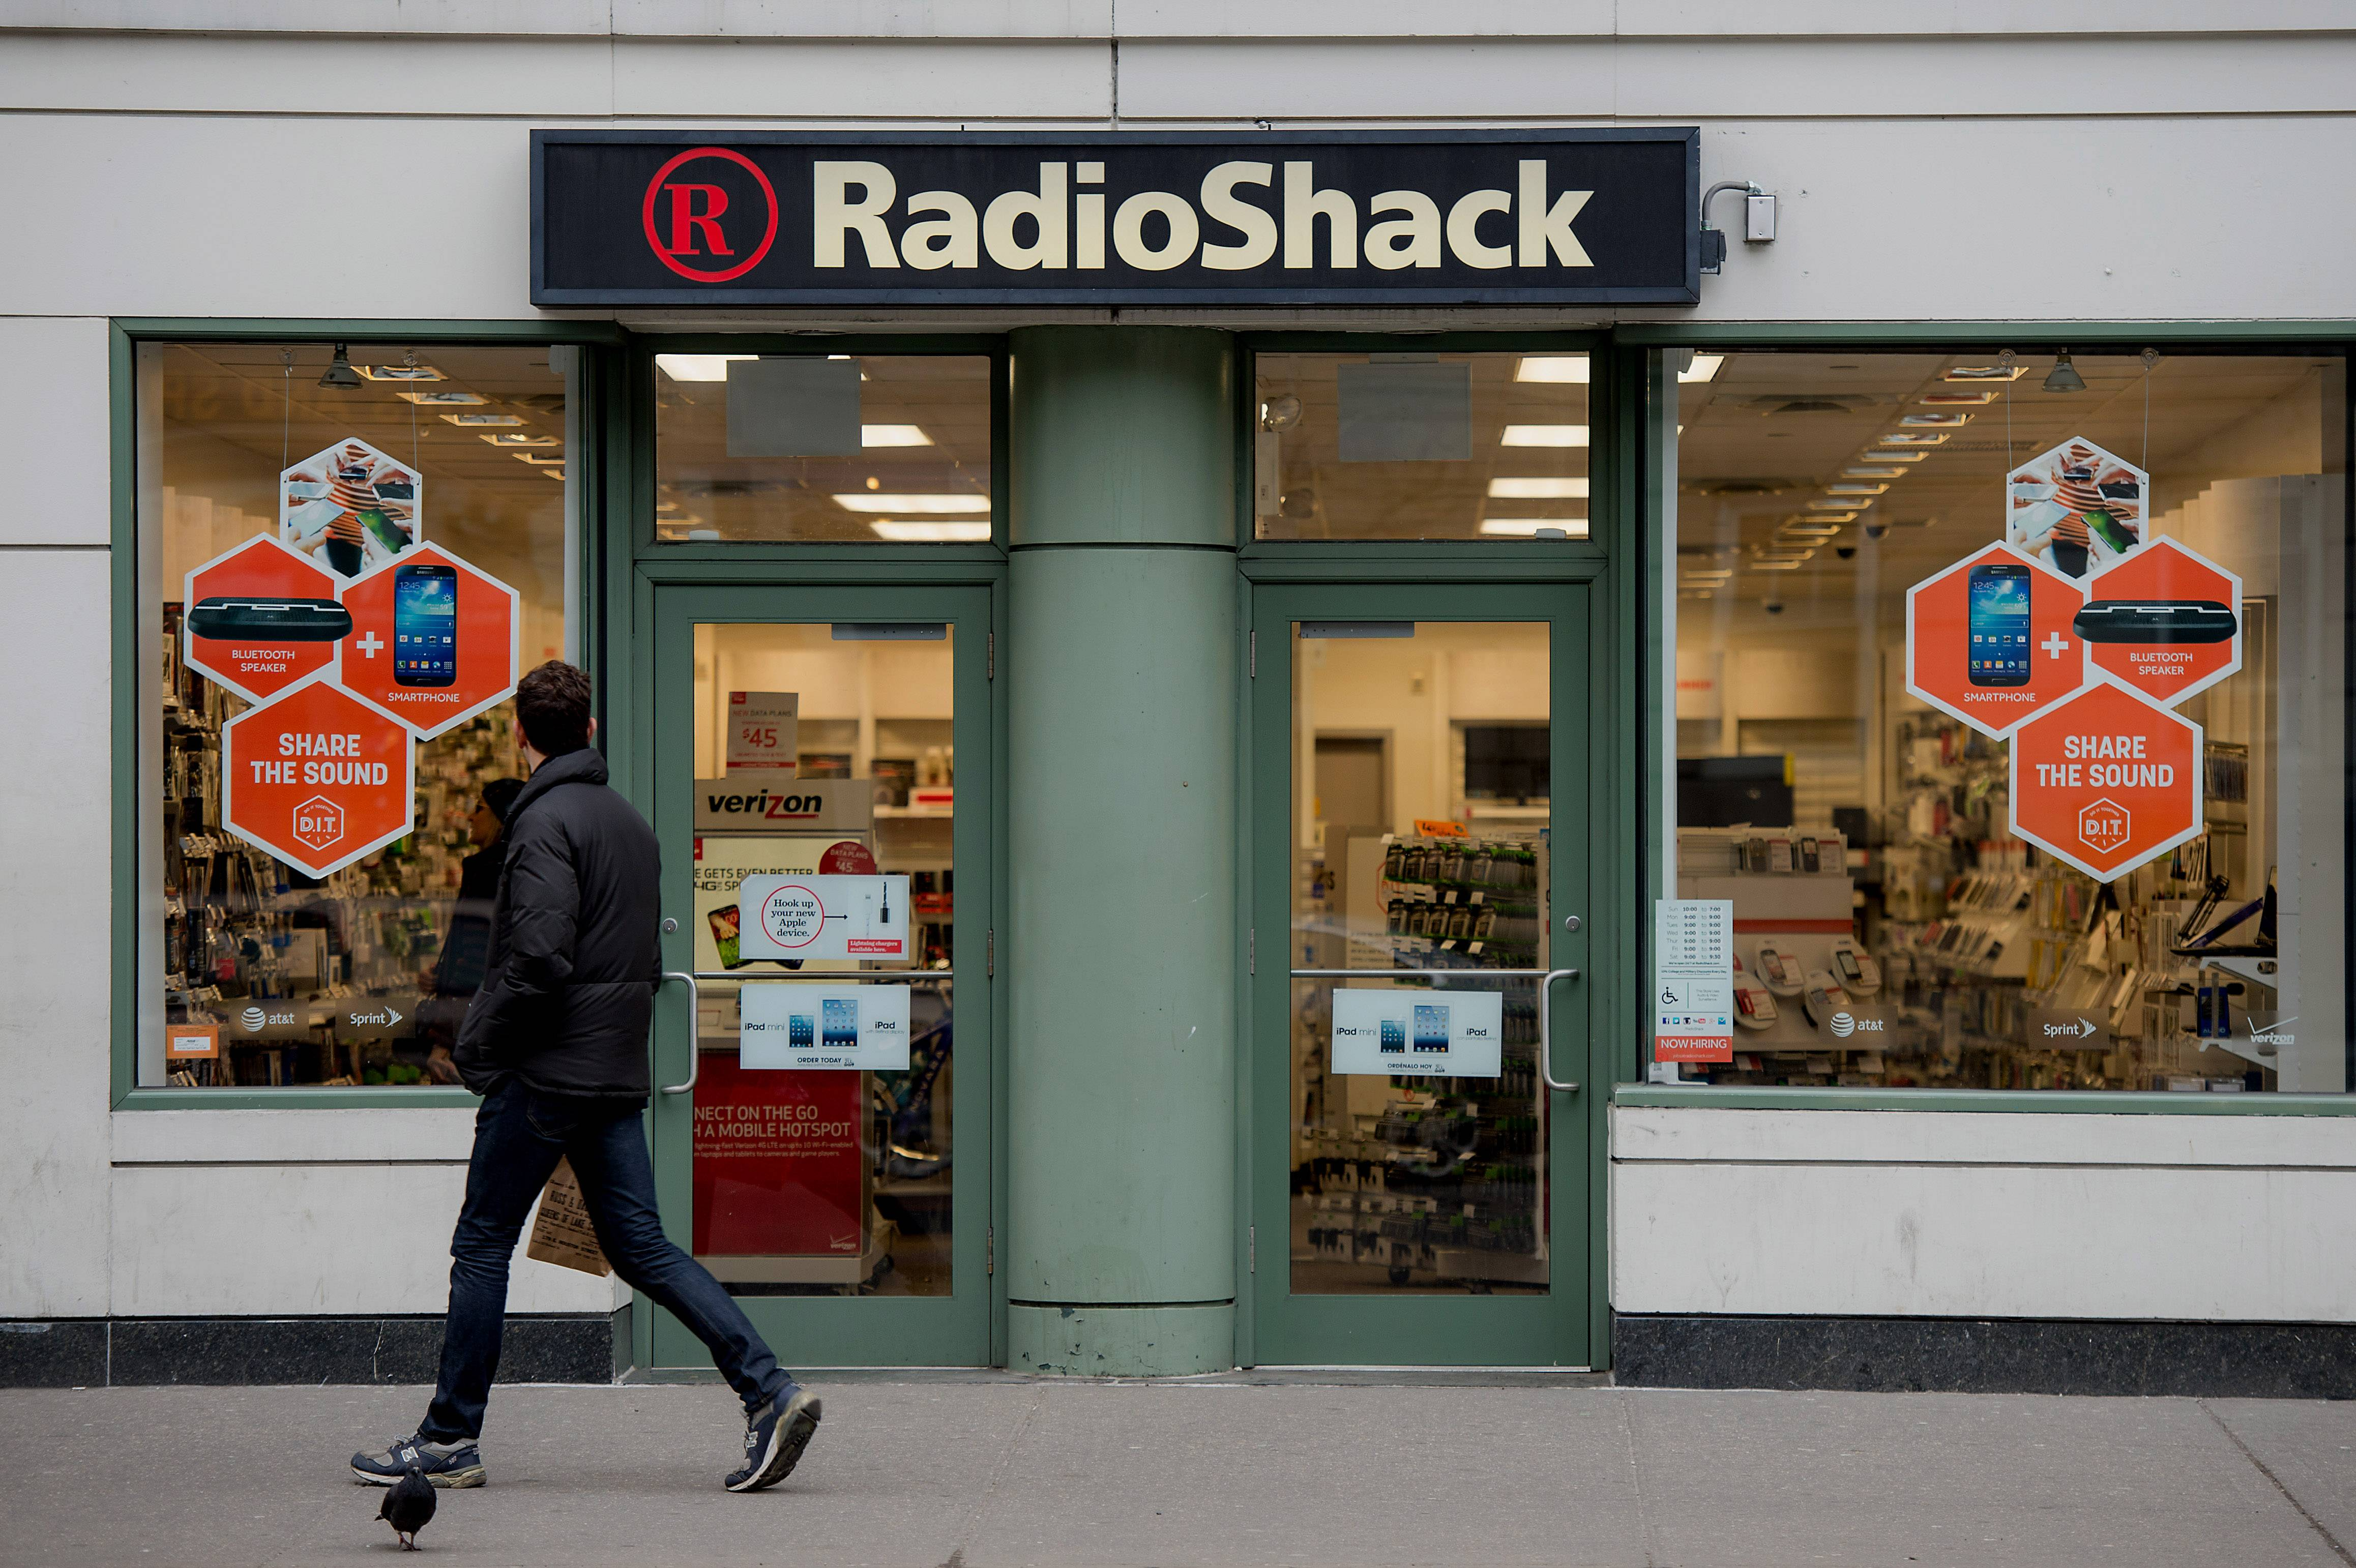 RadioShack plans to close up to 1,100 of its underperforming stores in the U.S. and reported a wider loss for its fourth quarter as traffic slowed during the critical holiday season.